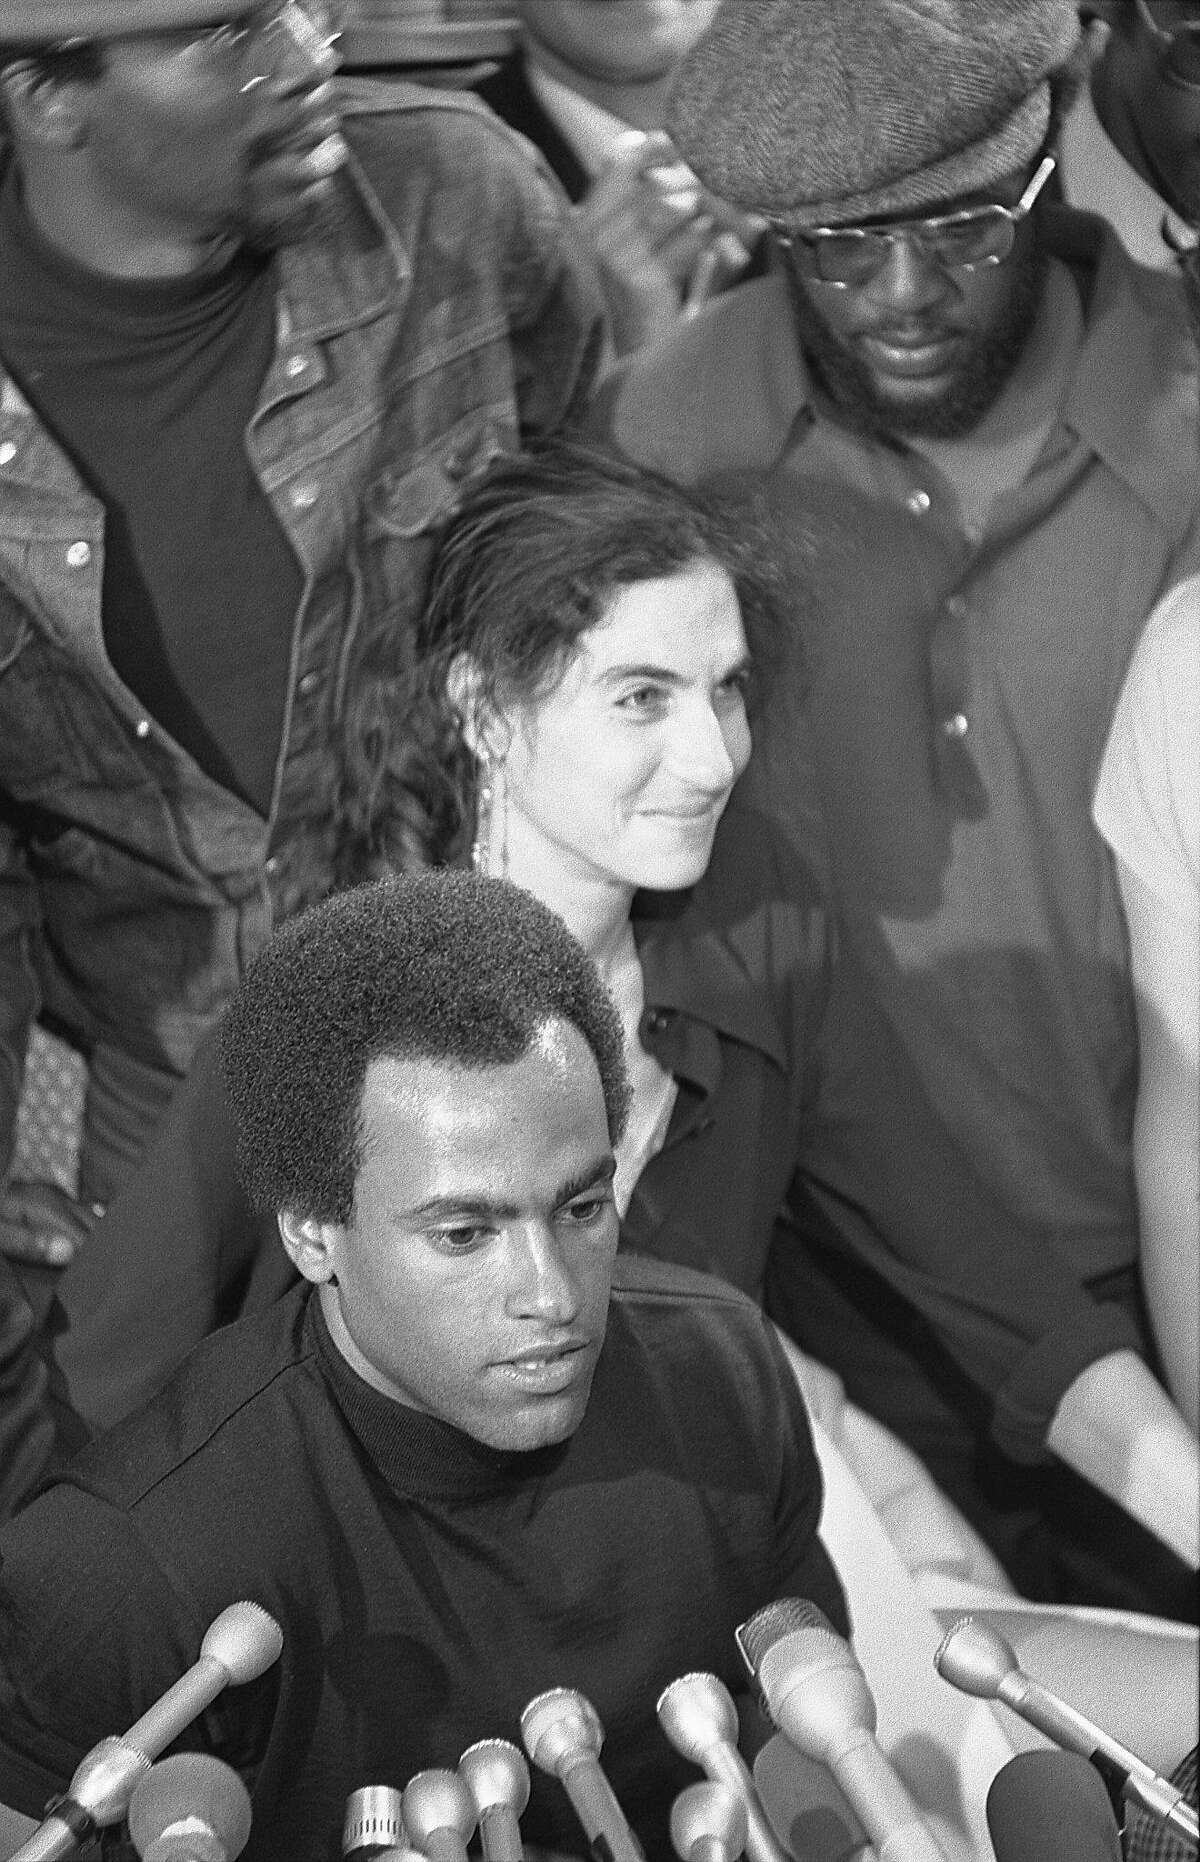 Black Panther Huey Newton with his lawyer, Fay Stender, in San Francisco at Charles Garry's office, August 5, 1970 the day he was released from prison